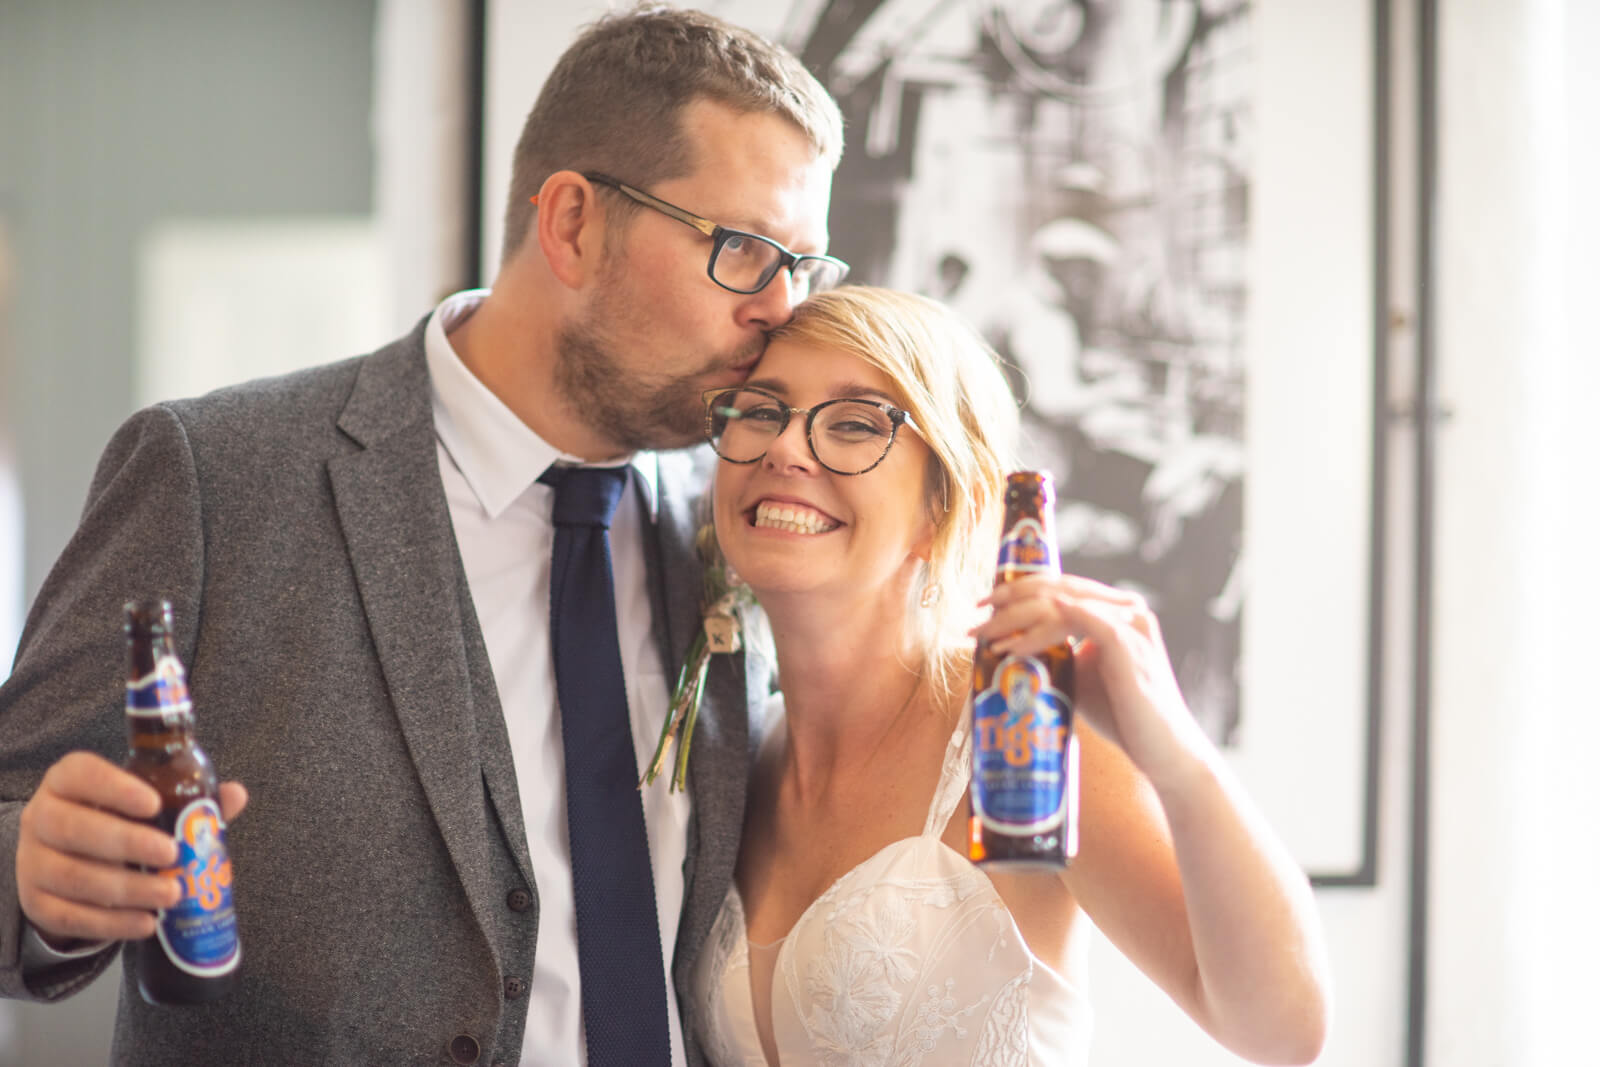 Groom kisses bride on the head as they both hold up their bottles of beer